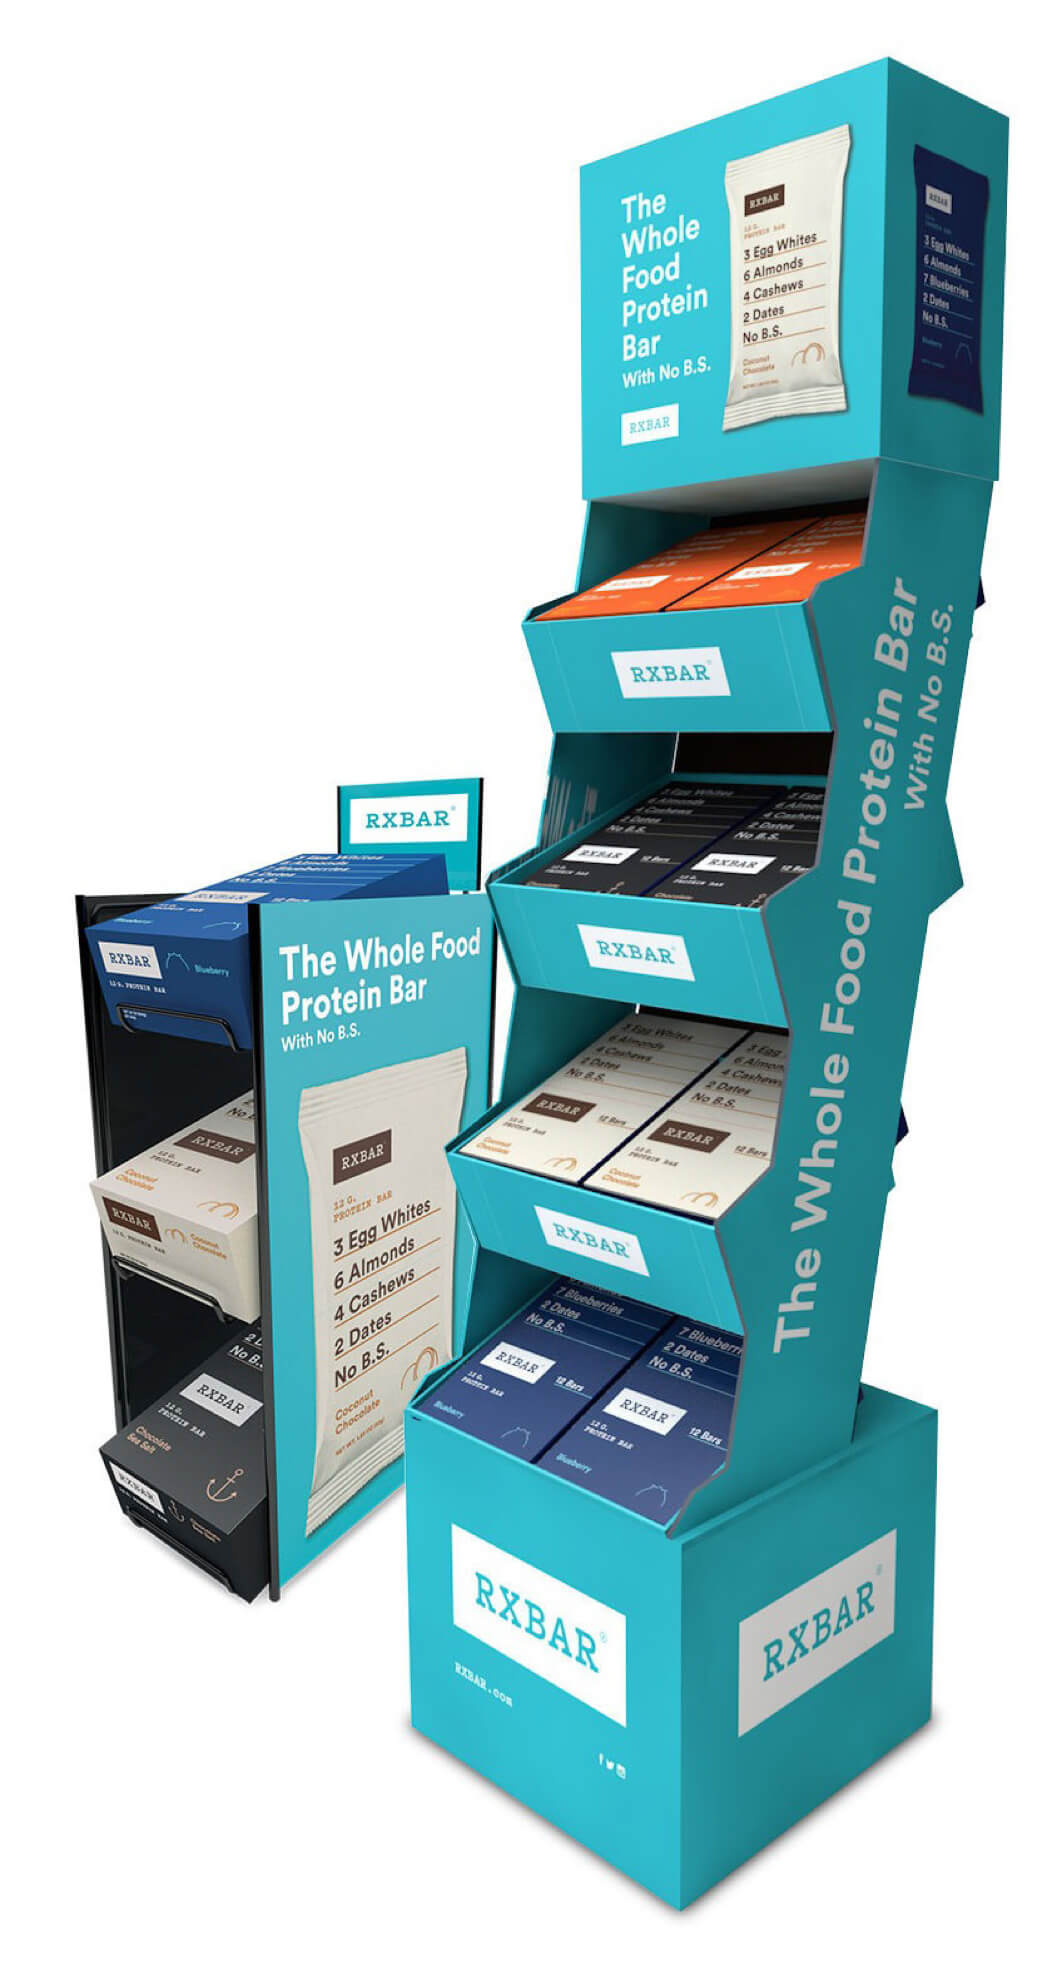 RXBAR In Store Countertop Displays